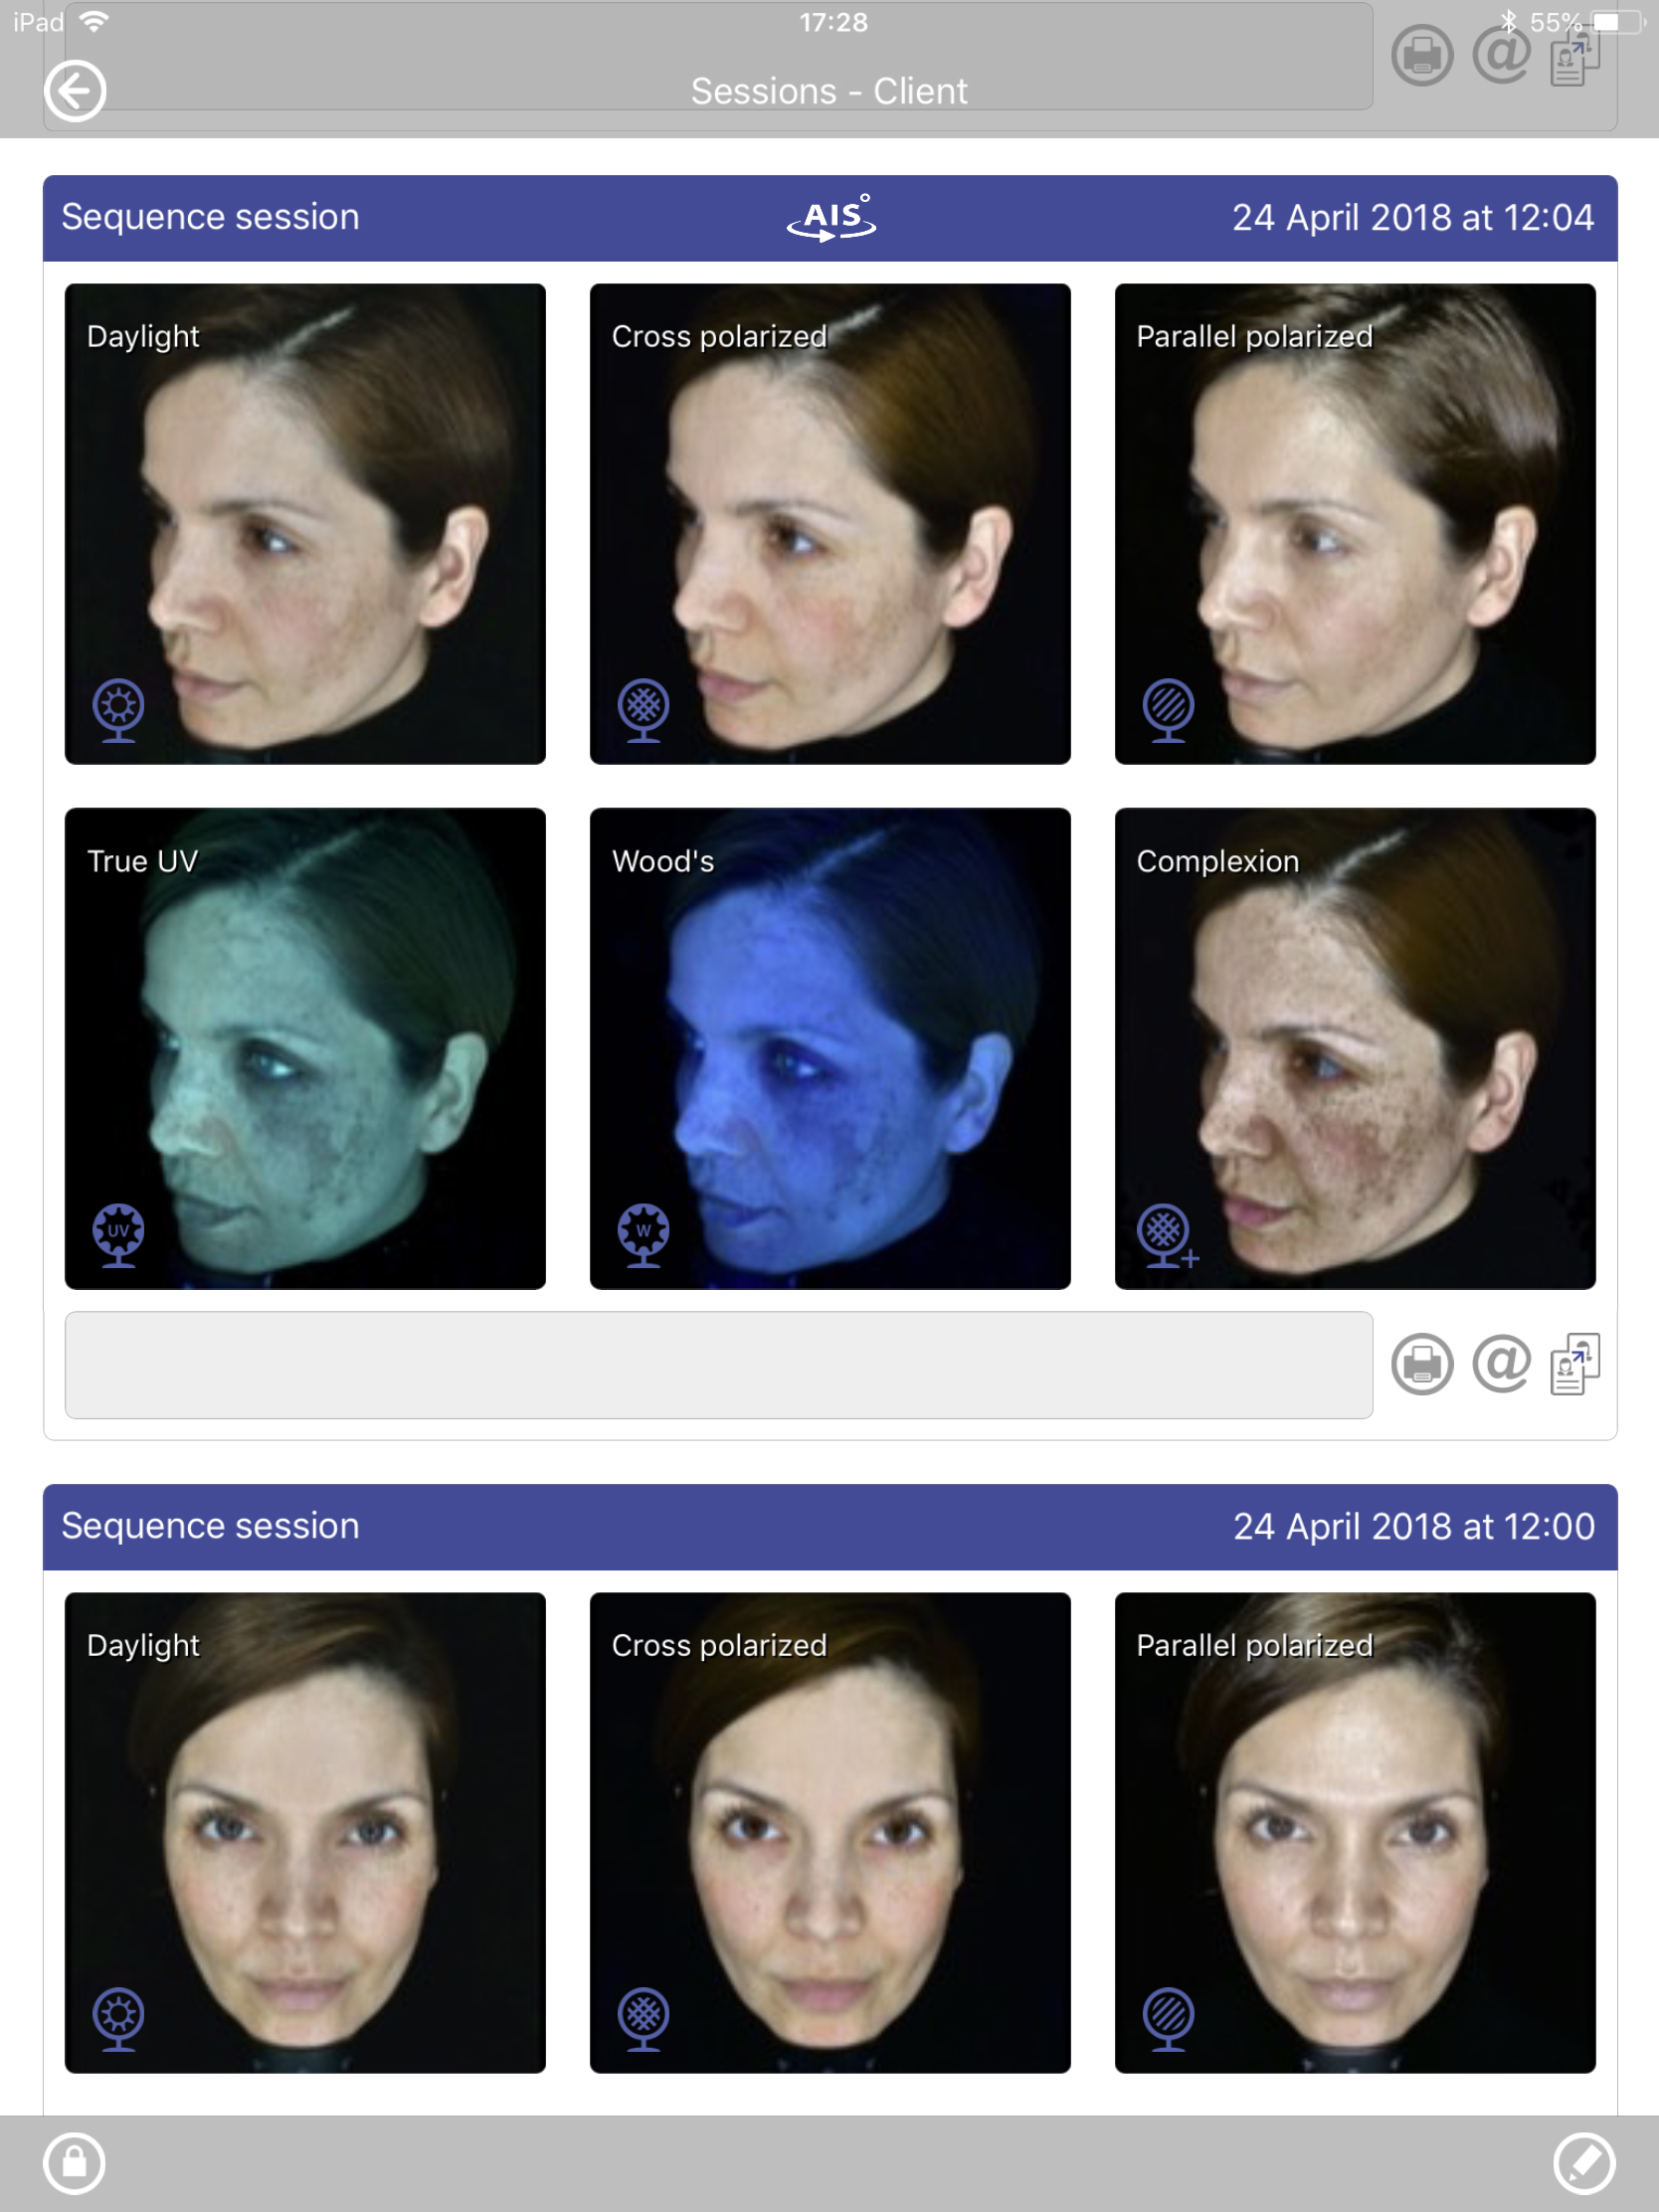 6 light affected images of skin for analysis